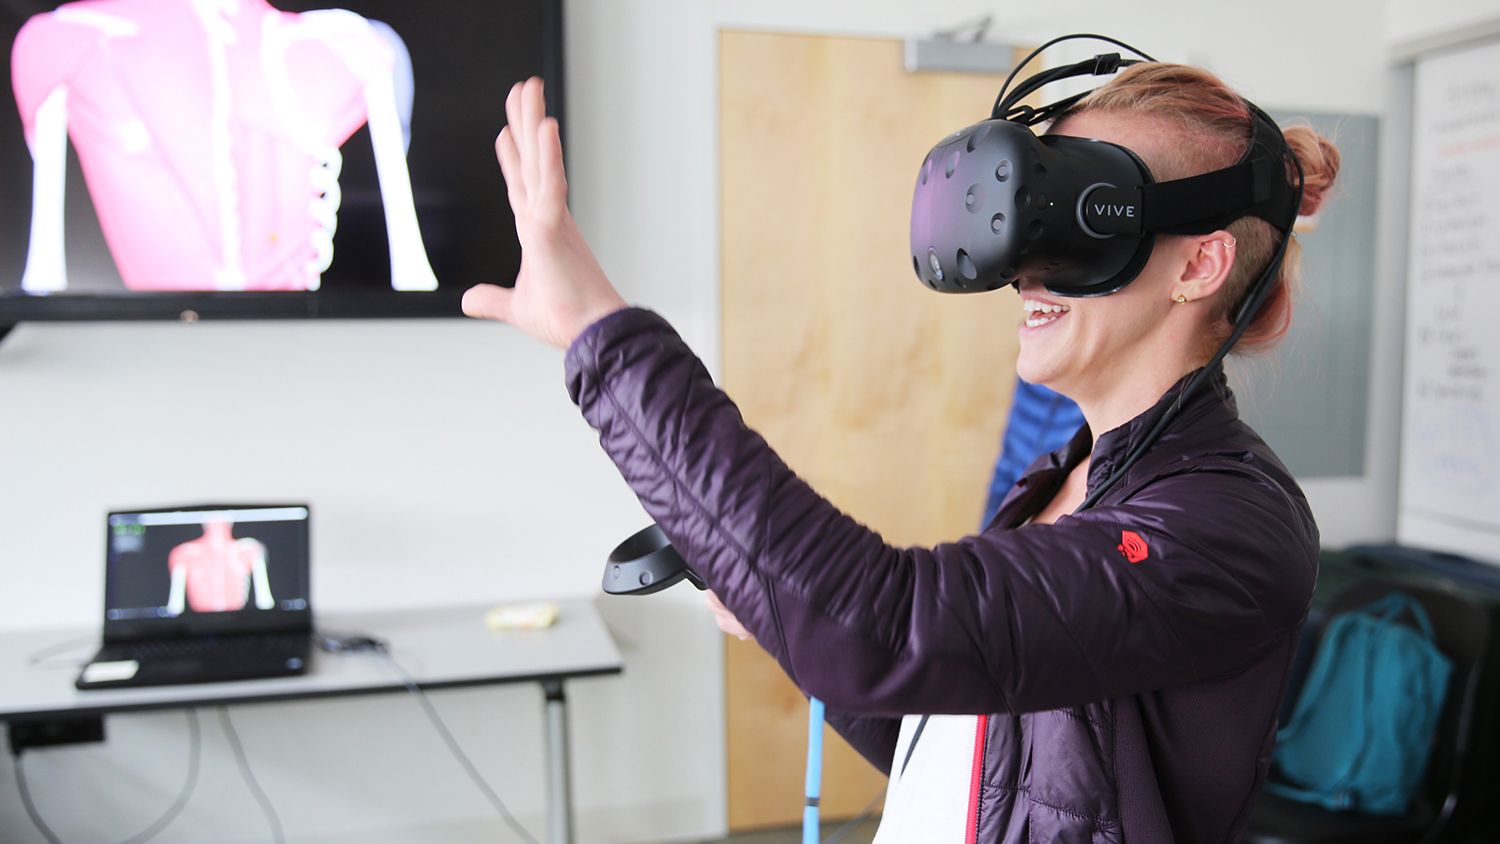 a student waves her hand while wearing a virtual reality headset